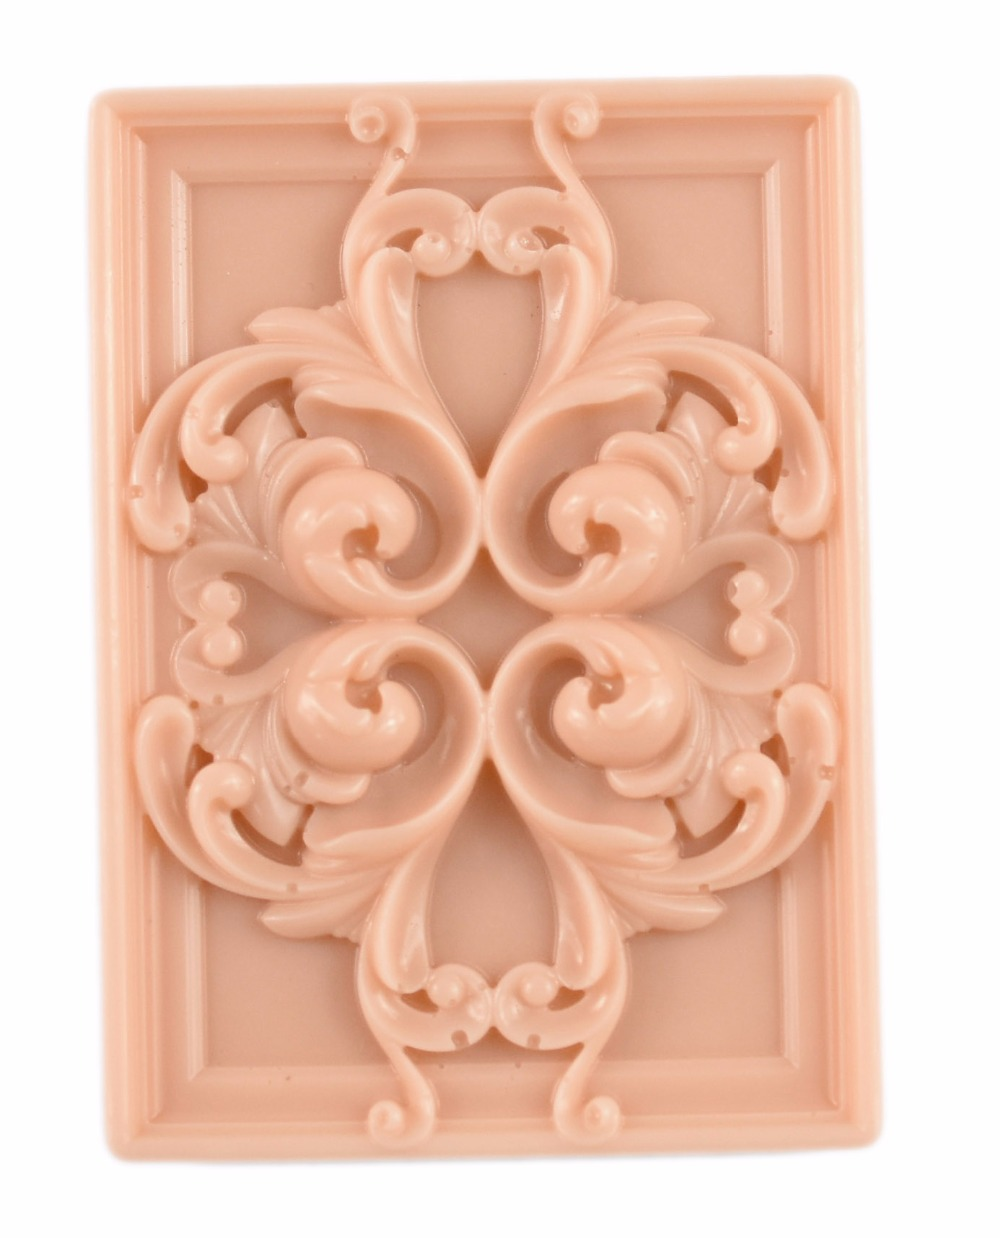 Longzang flower silicone 3d soap mold craft molds handmade